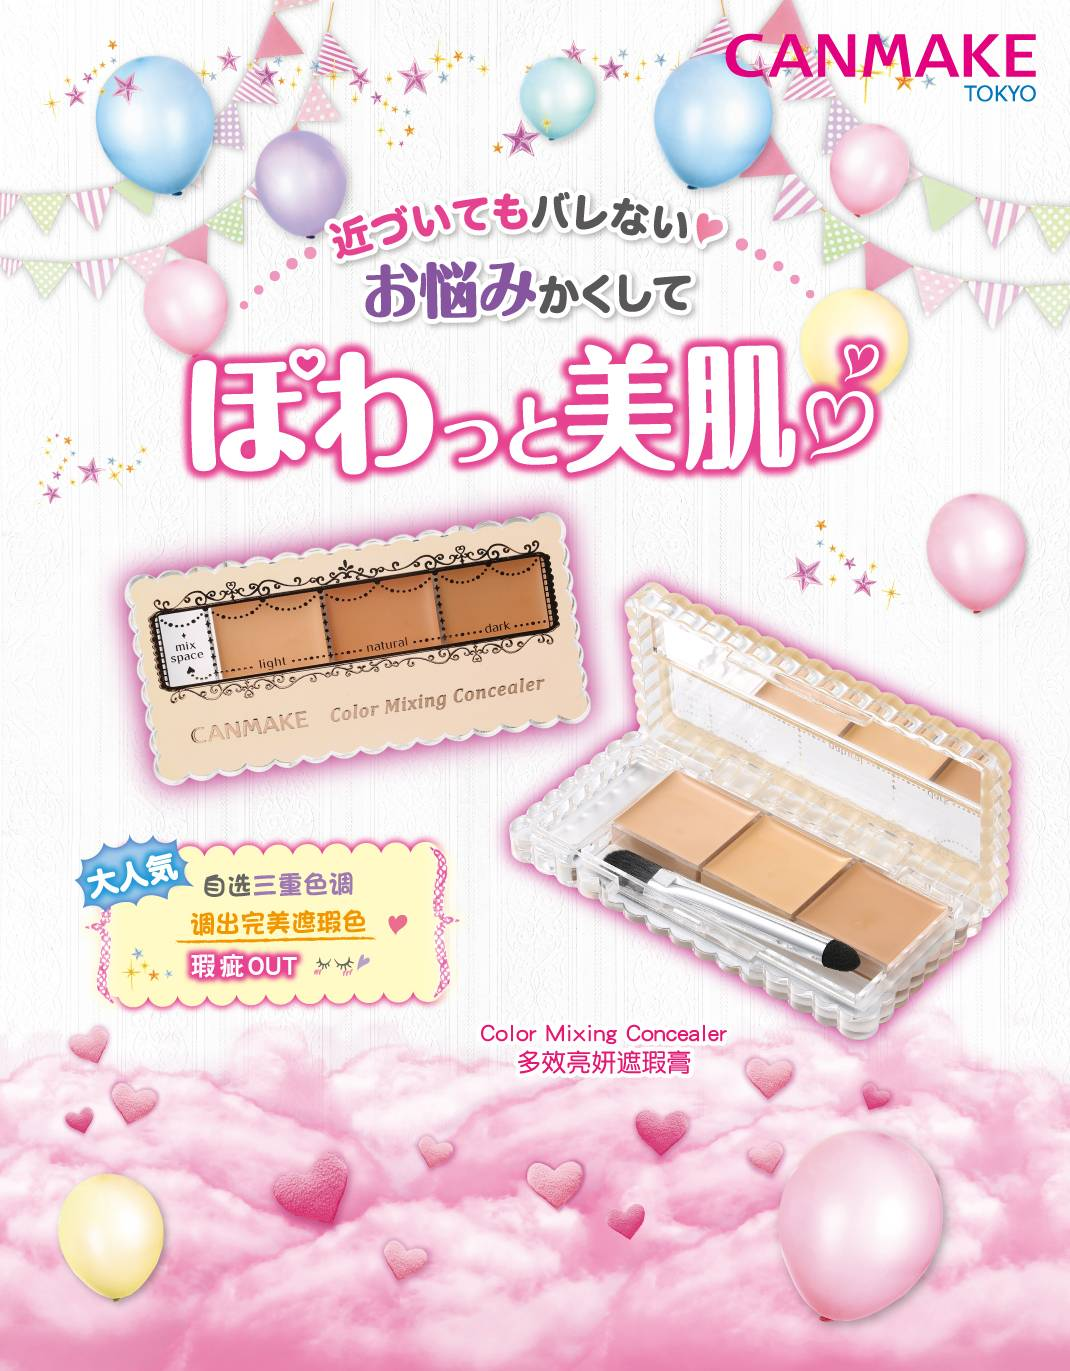 Color Mixing Concealer 多效亮妍遮瑕膏